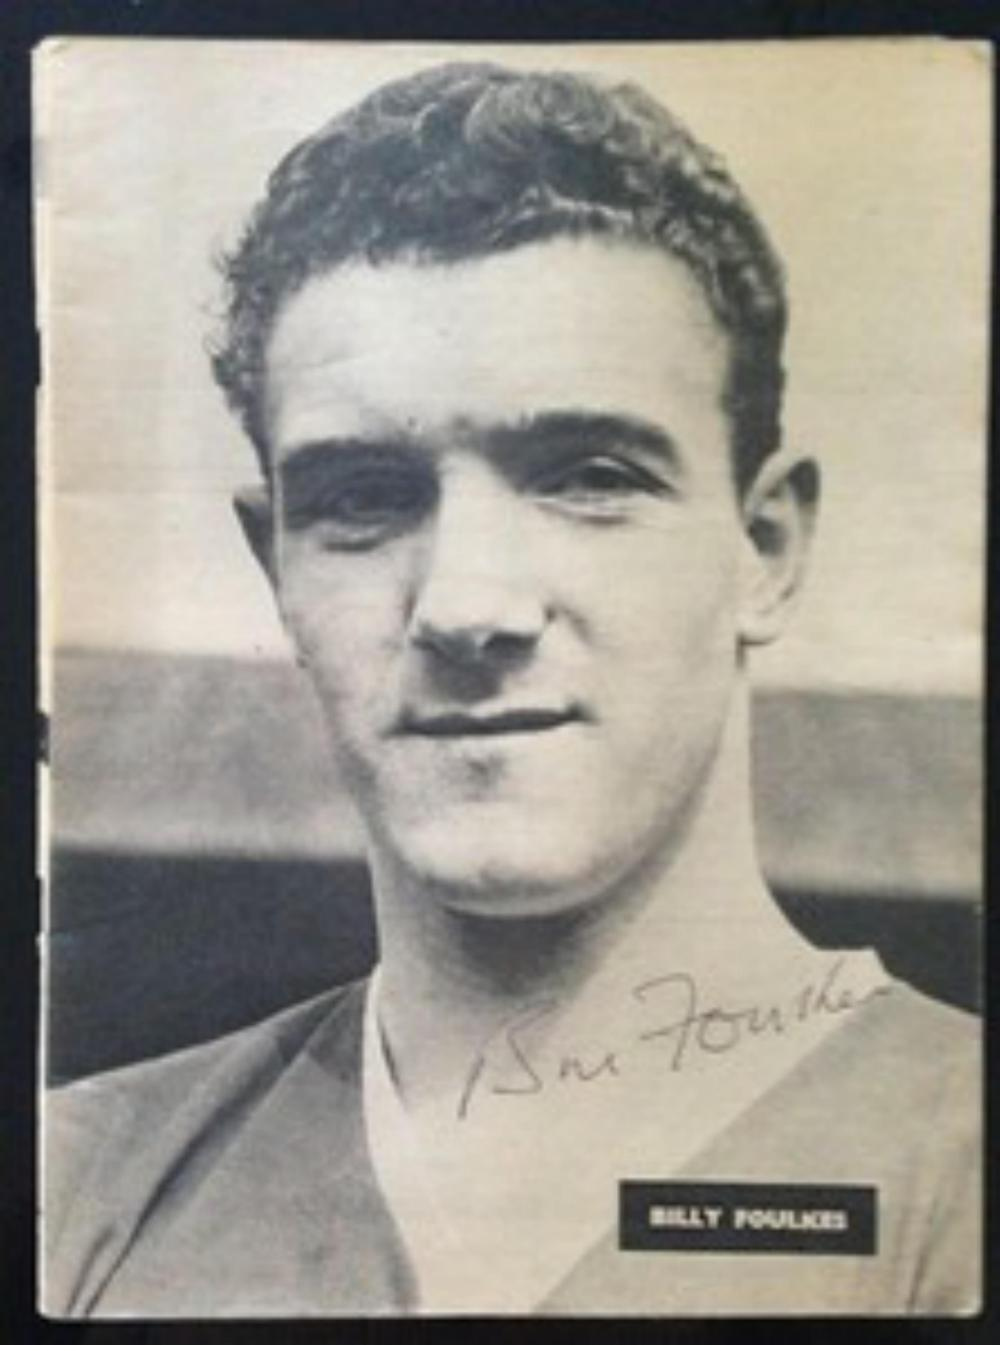 Lot 211: Signed black and white full page magazine poster  signed by Bill Foulkes - Munich Air Disaster survivor and Busby Babe who played 686 times for the club and scored 9 goals.